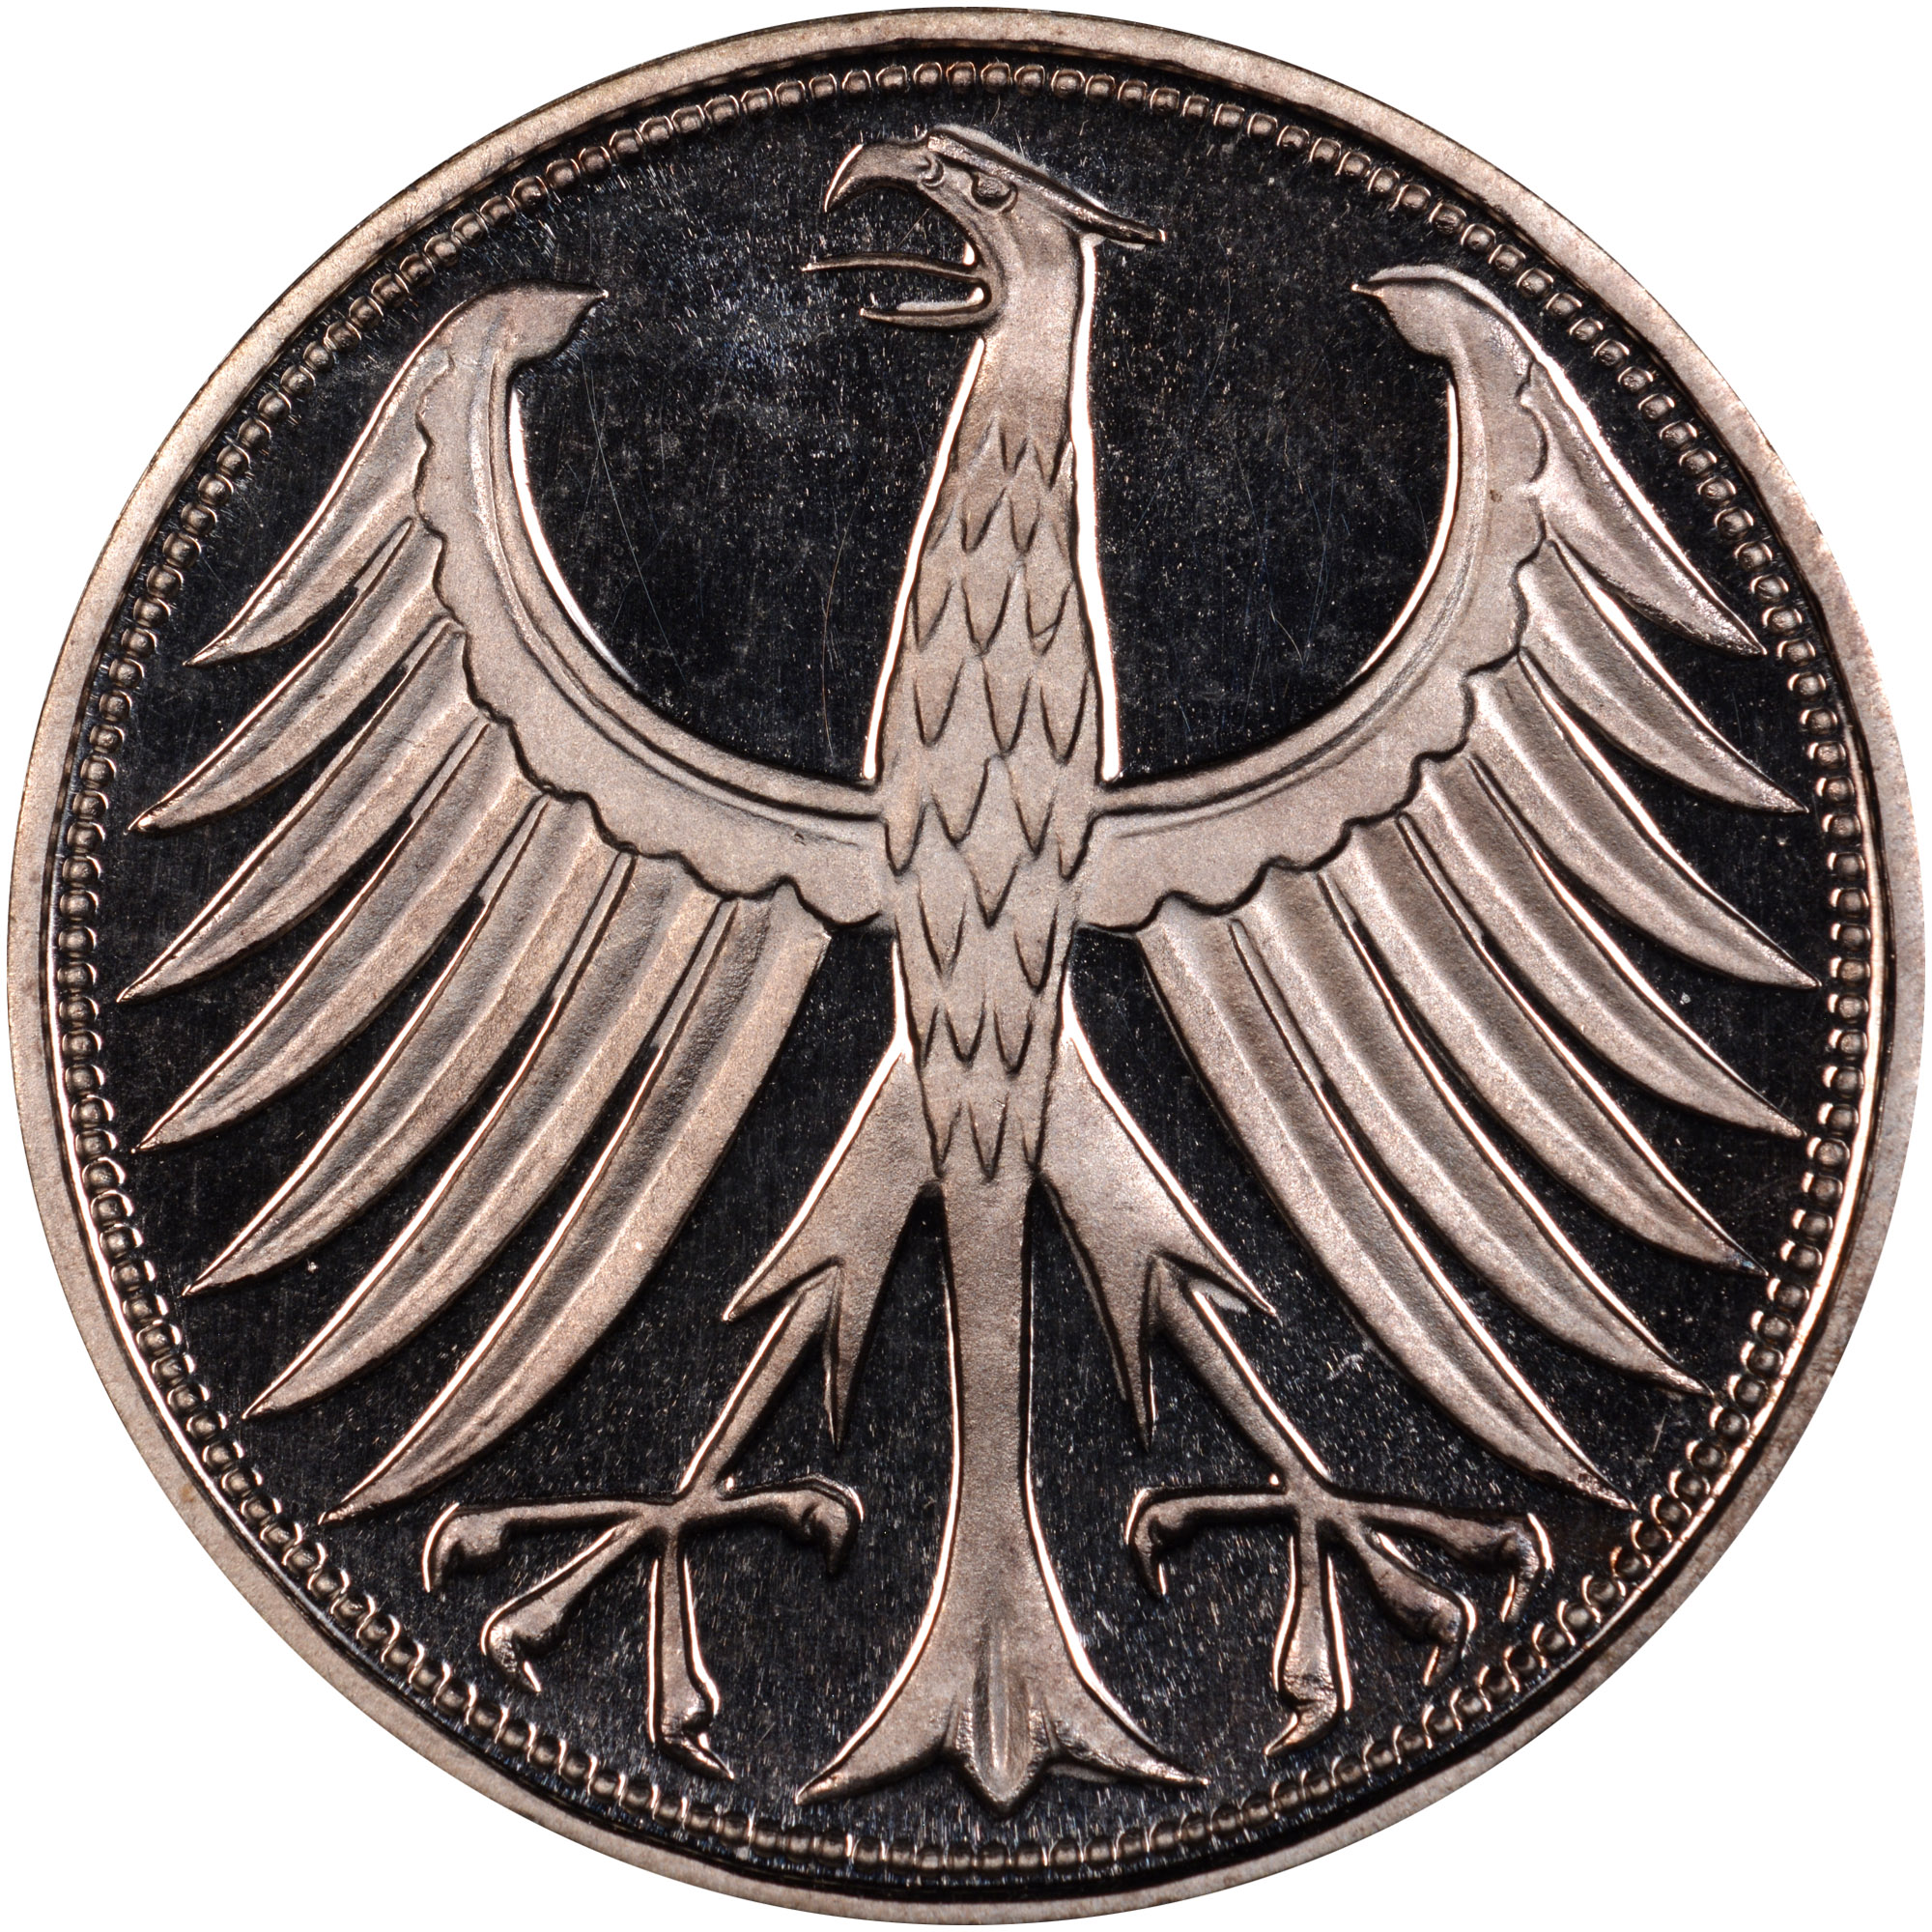 Germany - Federal Republic 5 Mark reverse